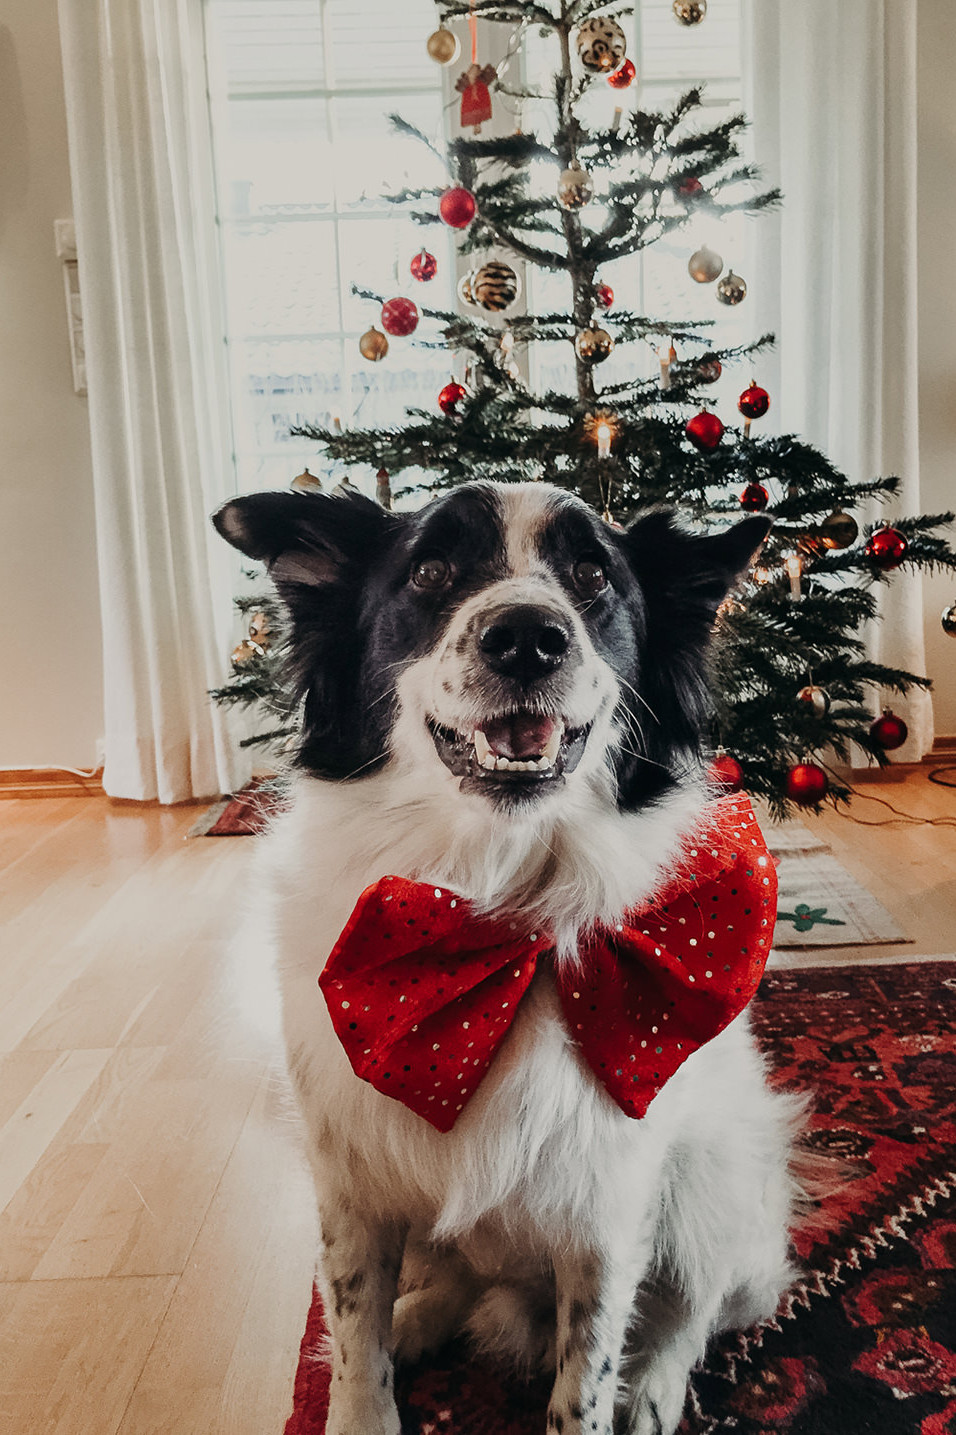 Shepperds dog with a red bow in front of the Christmas tree and ready for gifts